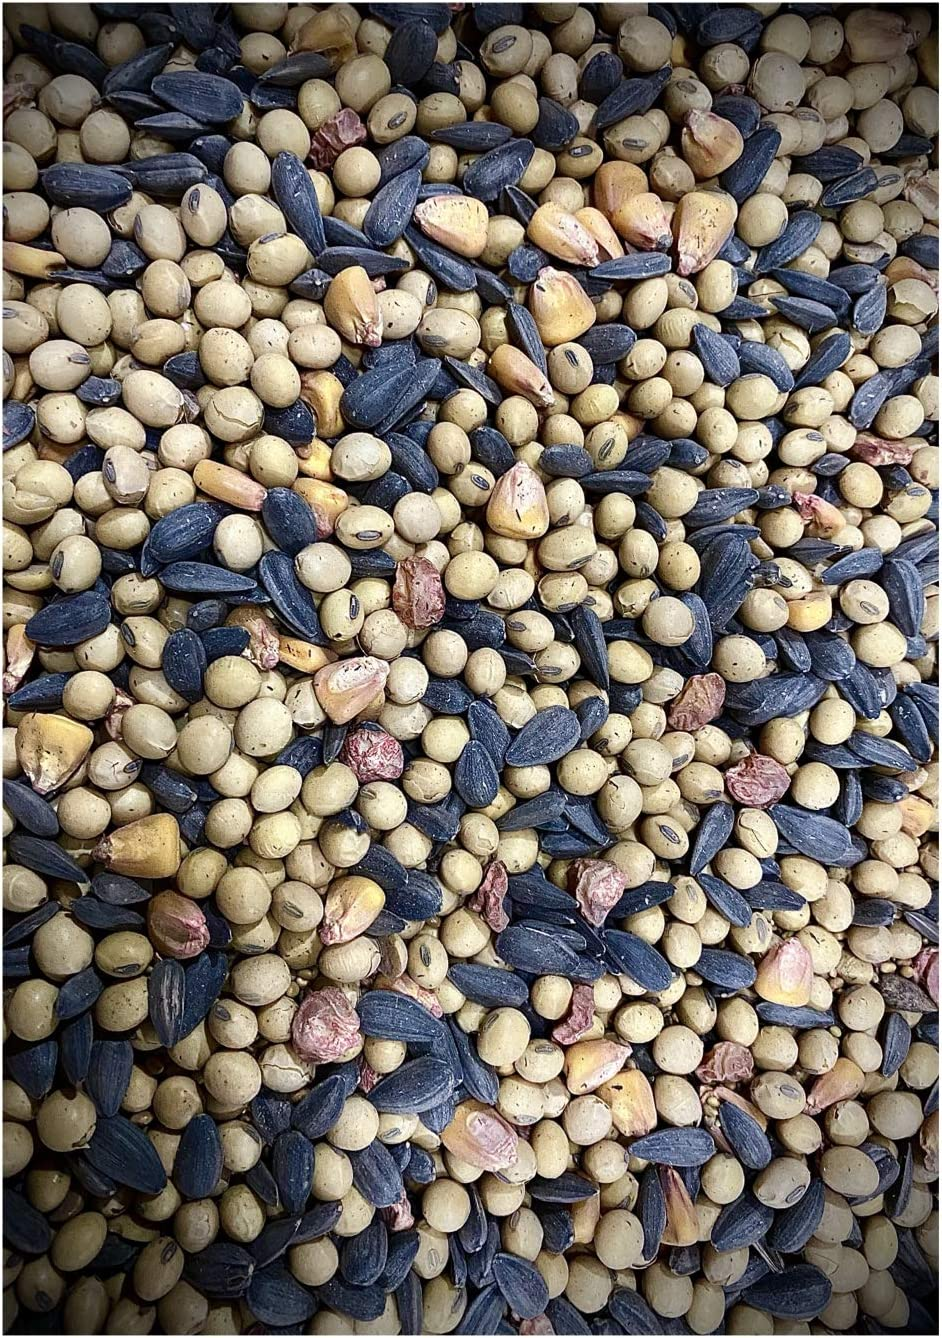 Crooked Bend 25lb Food Plot Seed   Soy Beans Peredovik Sunflowers Sugar Buns Corn Red Clover Crimson Clover Mix   Basic Buck Blend   for Whitetail Deer and Other Wildlife